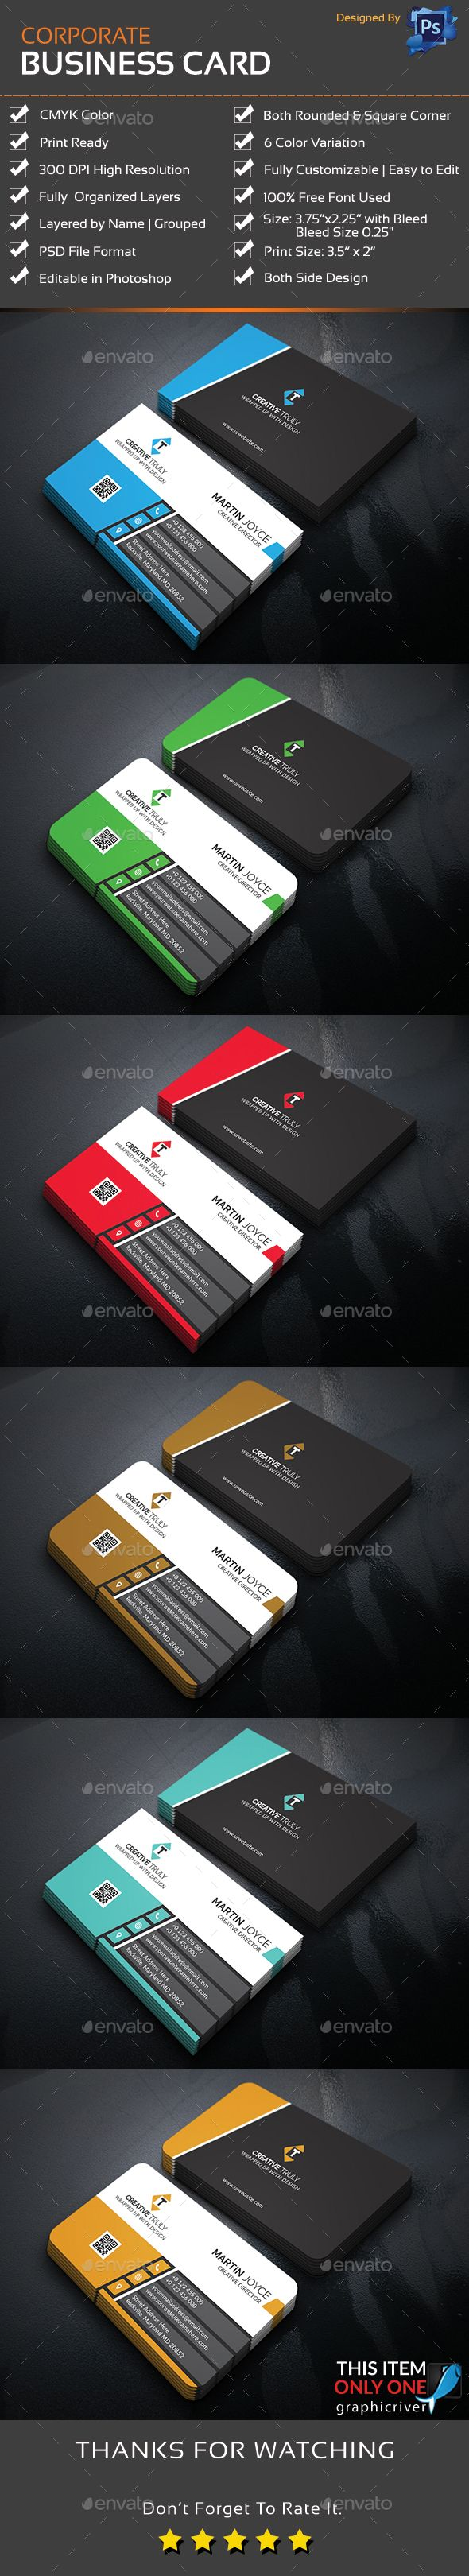 Corporate business card corporate business print templates and corporate business card corporate business print templates and card printing reheart Image collections